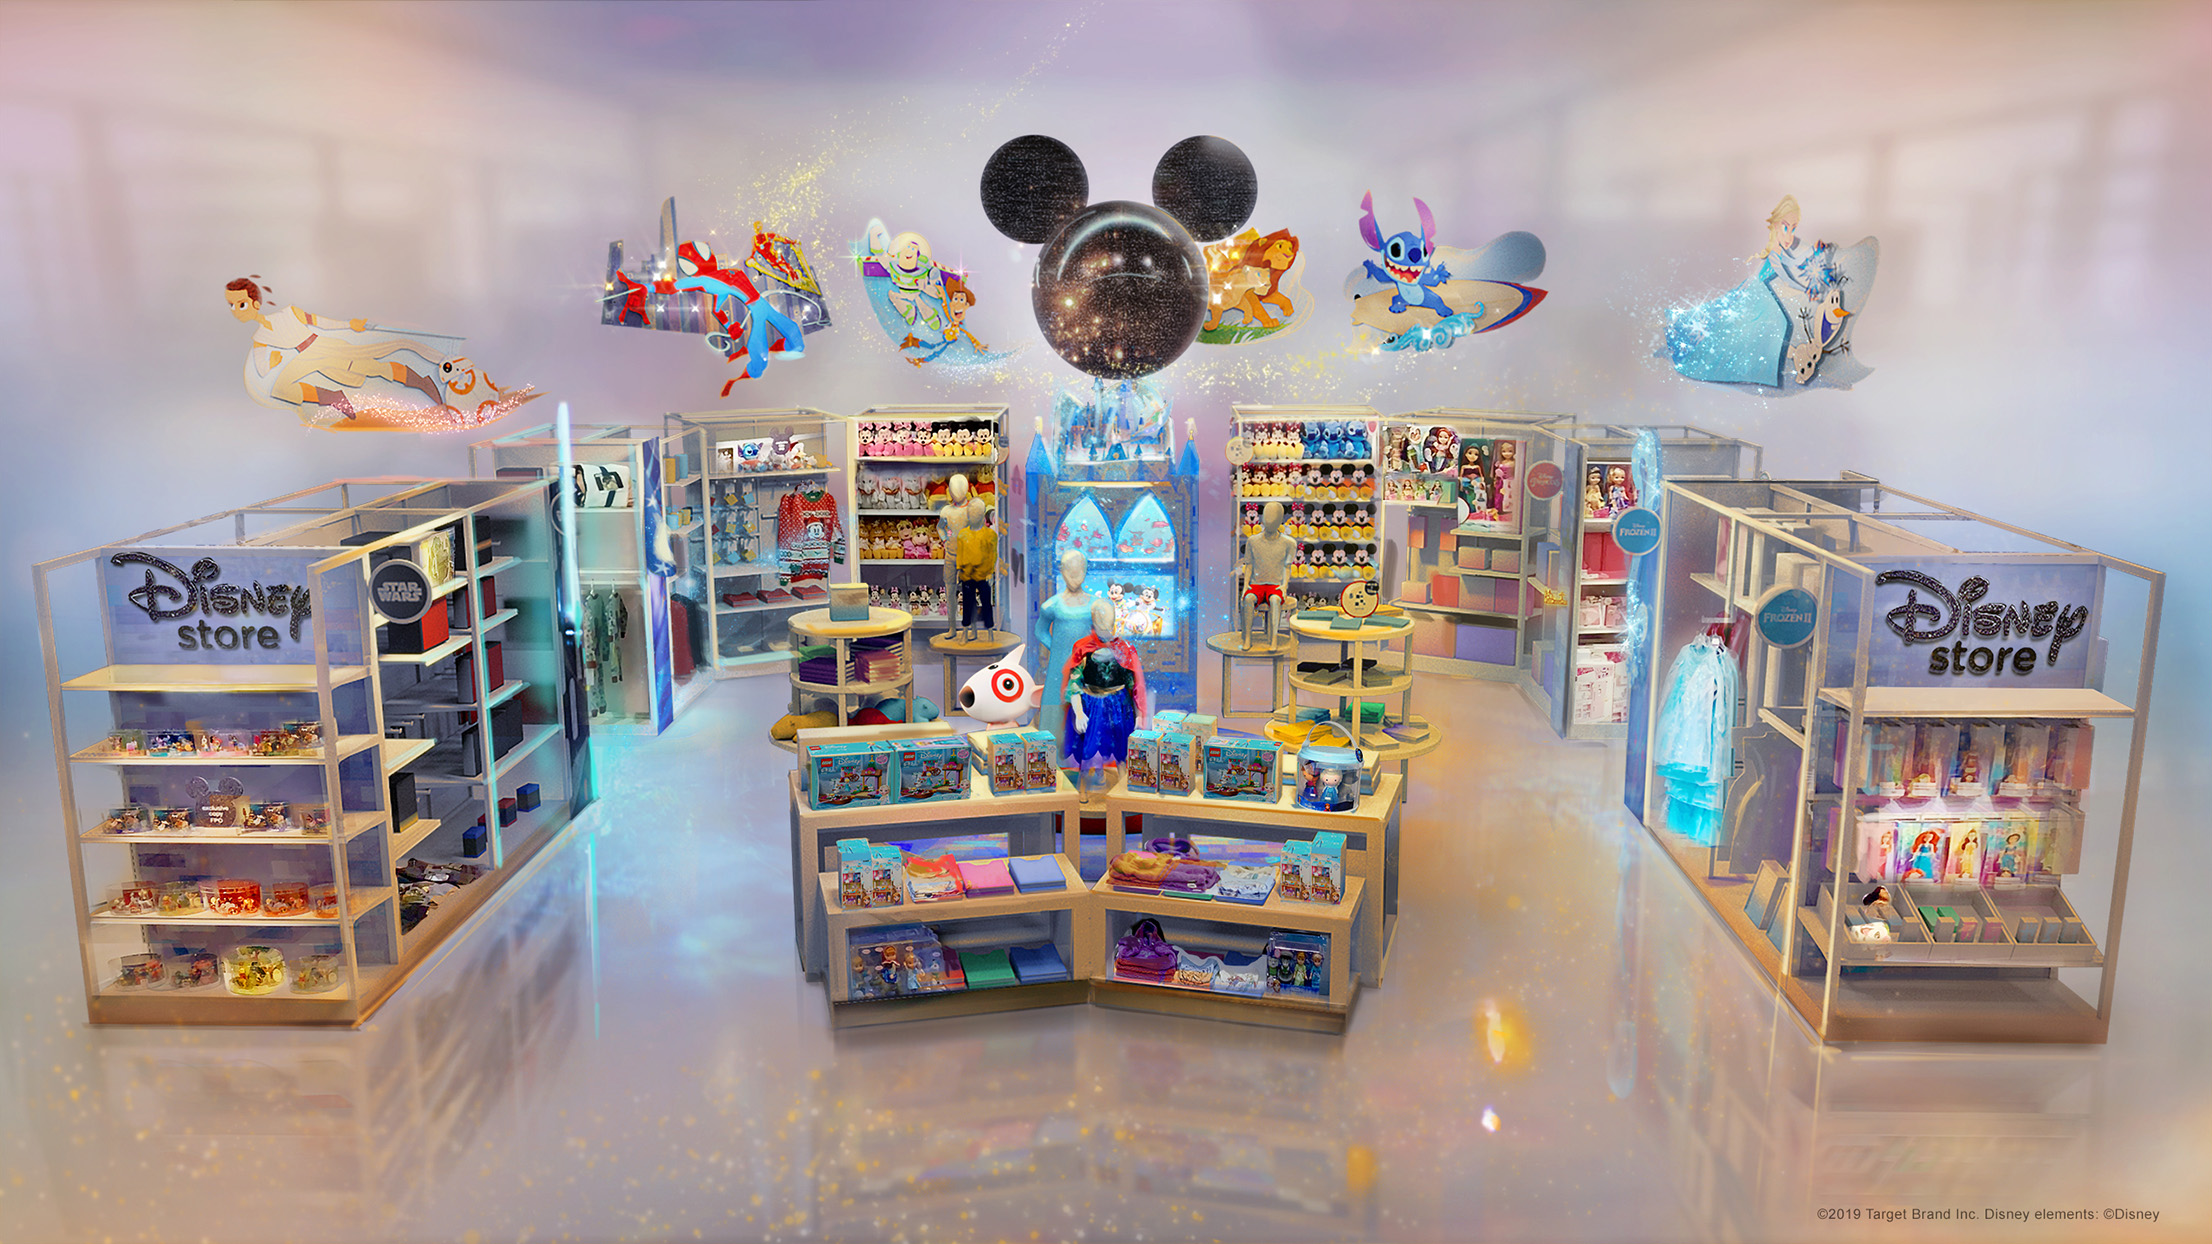 Disney store at Target display with multiple shelving units of toys, costumes, games, and clothes